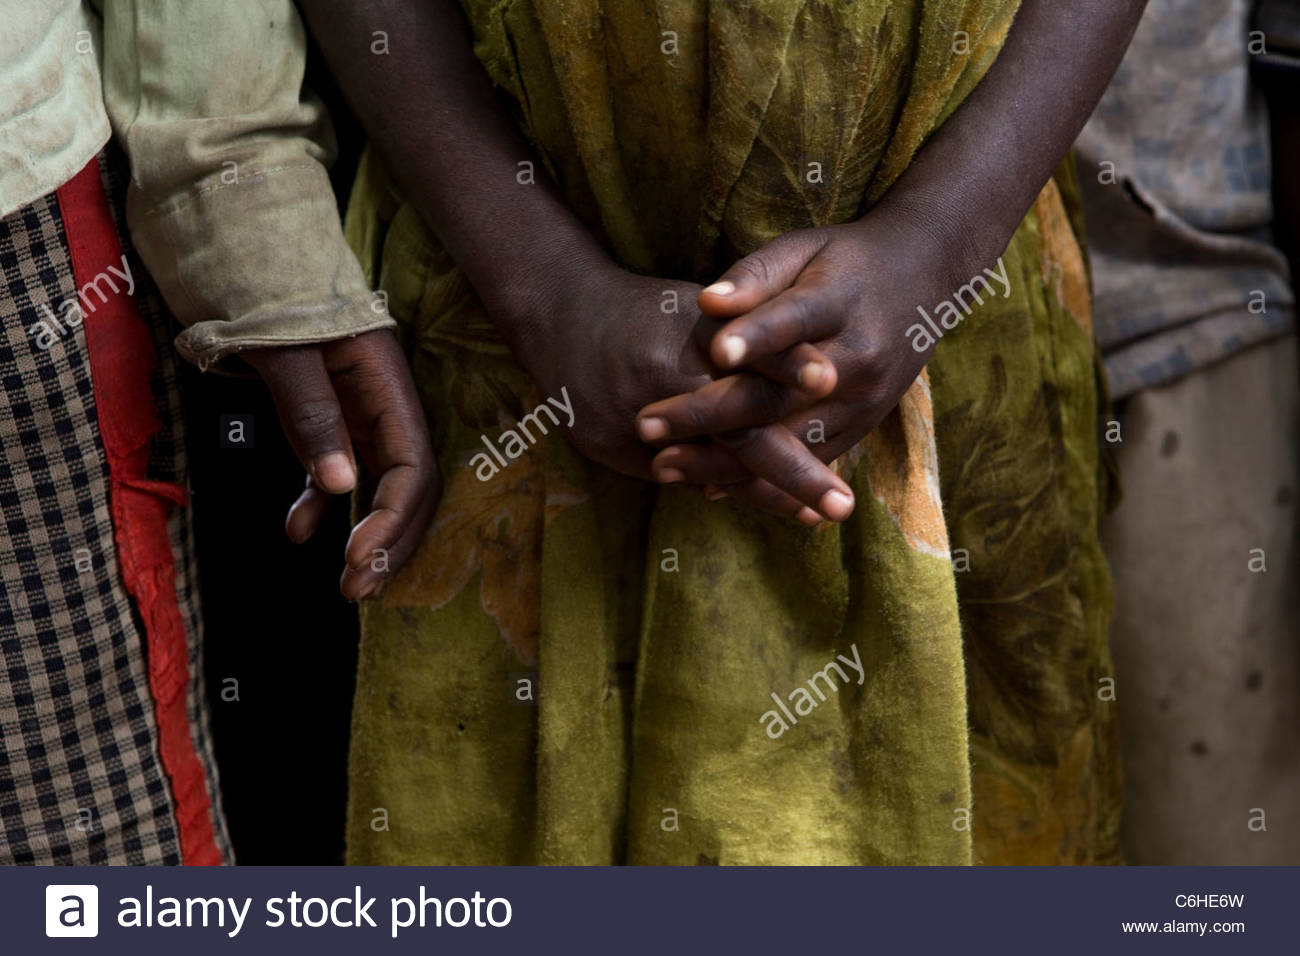 Child's hands in a refugee camp - Stock Image